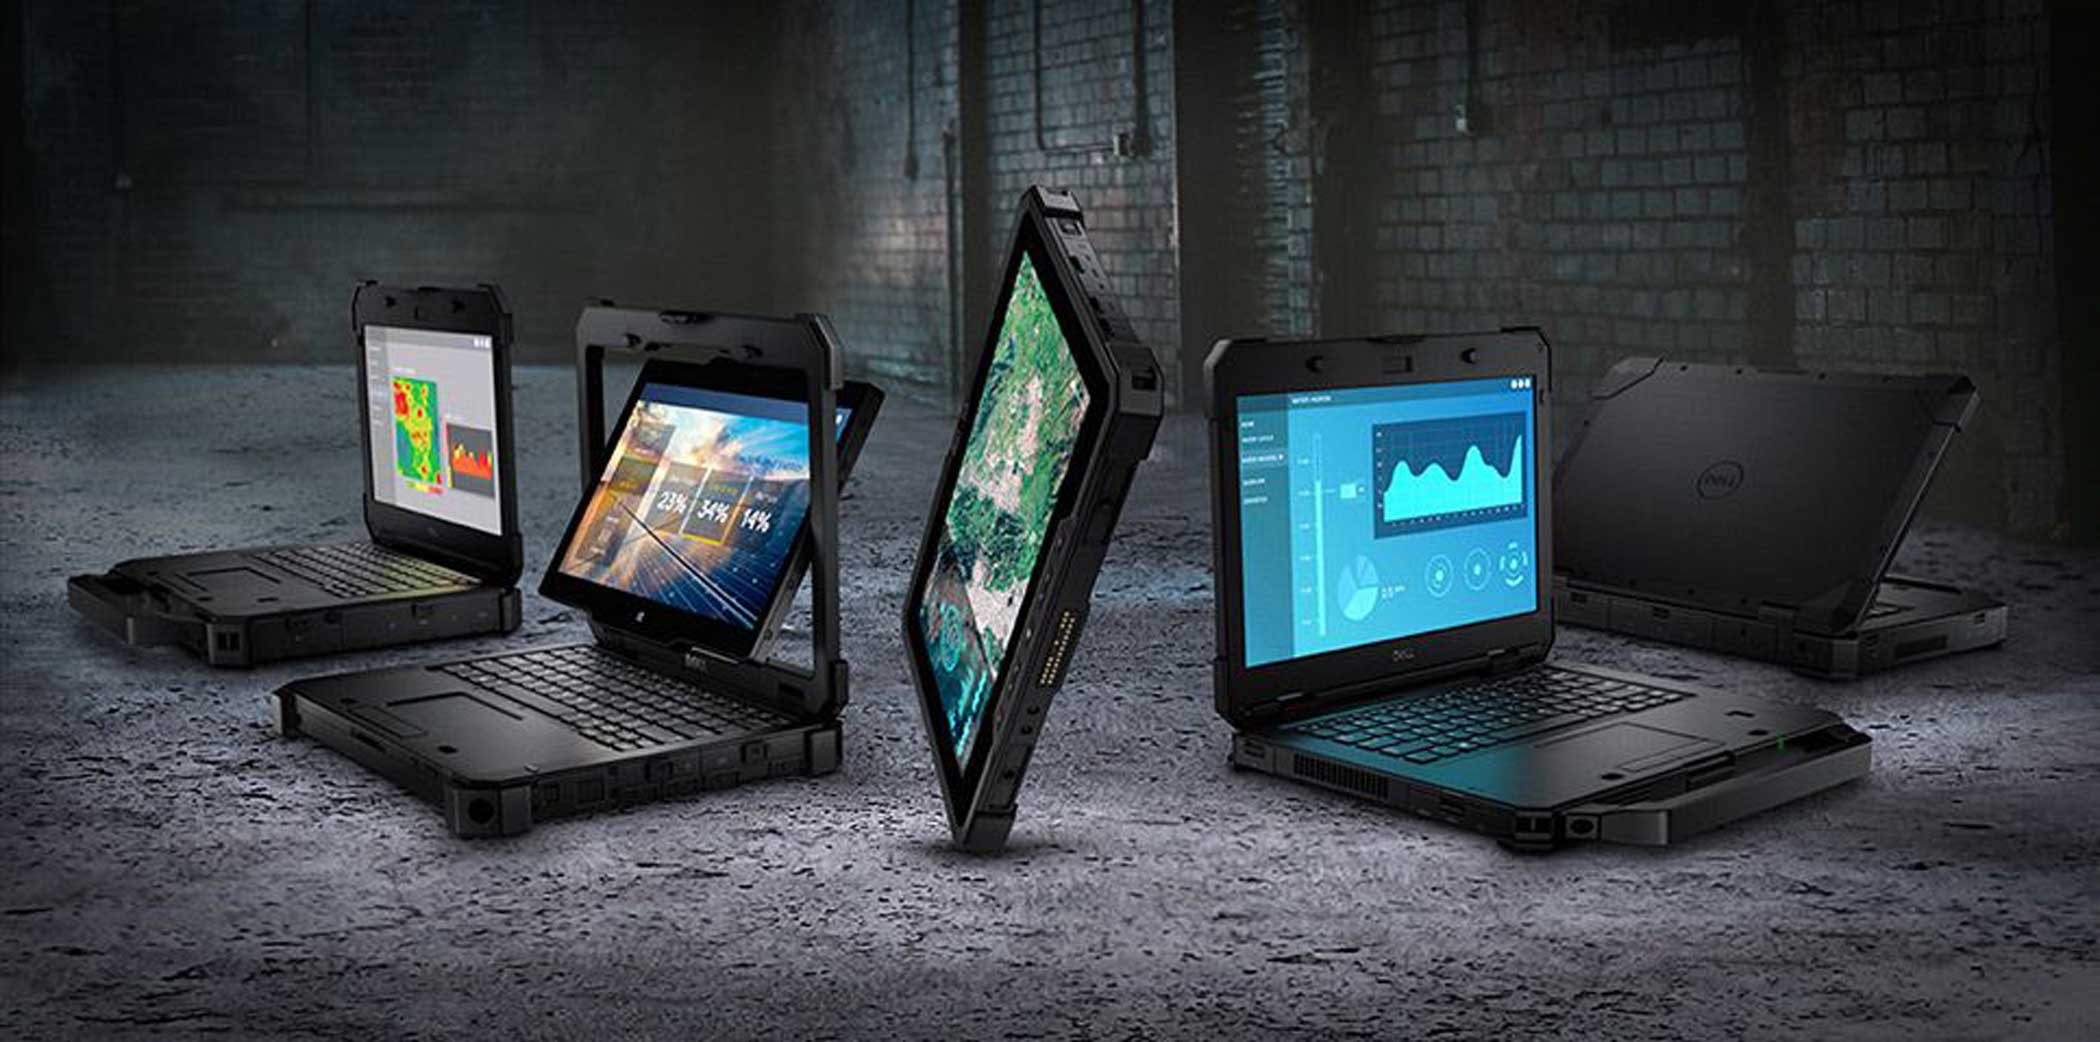 SPECIAL SECTION: The Newest in Rugged Laptops